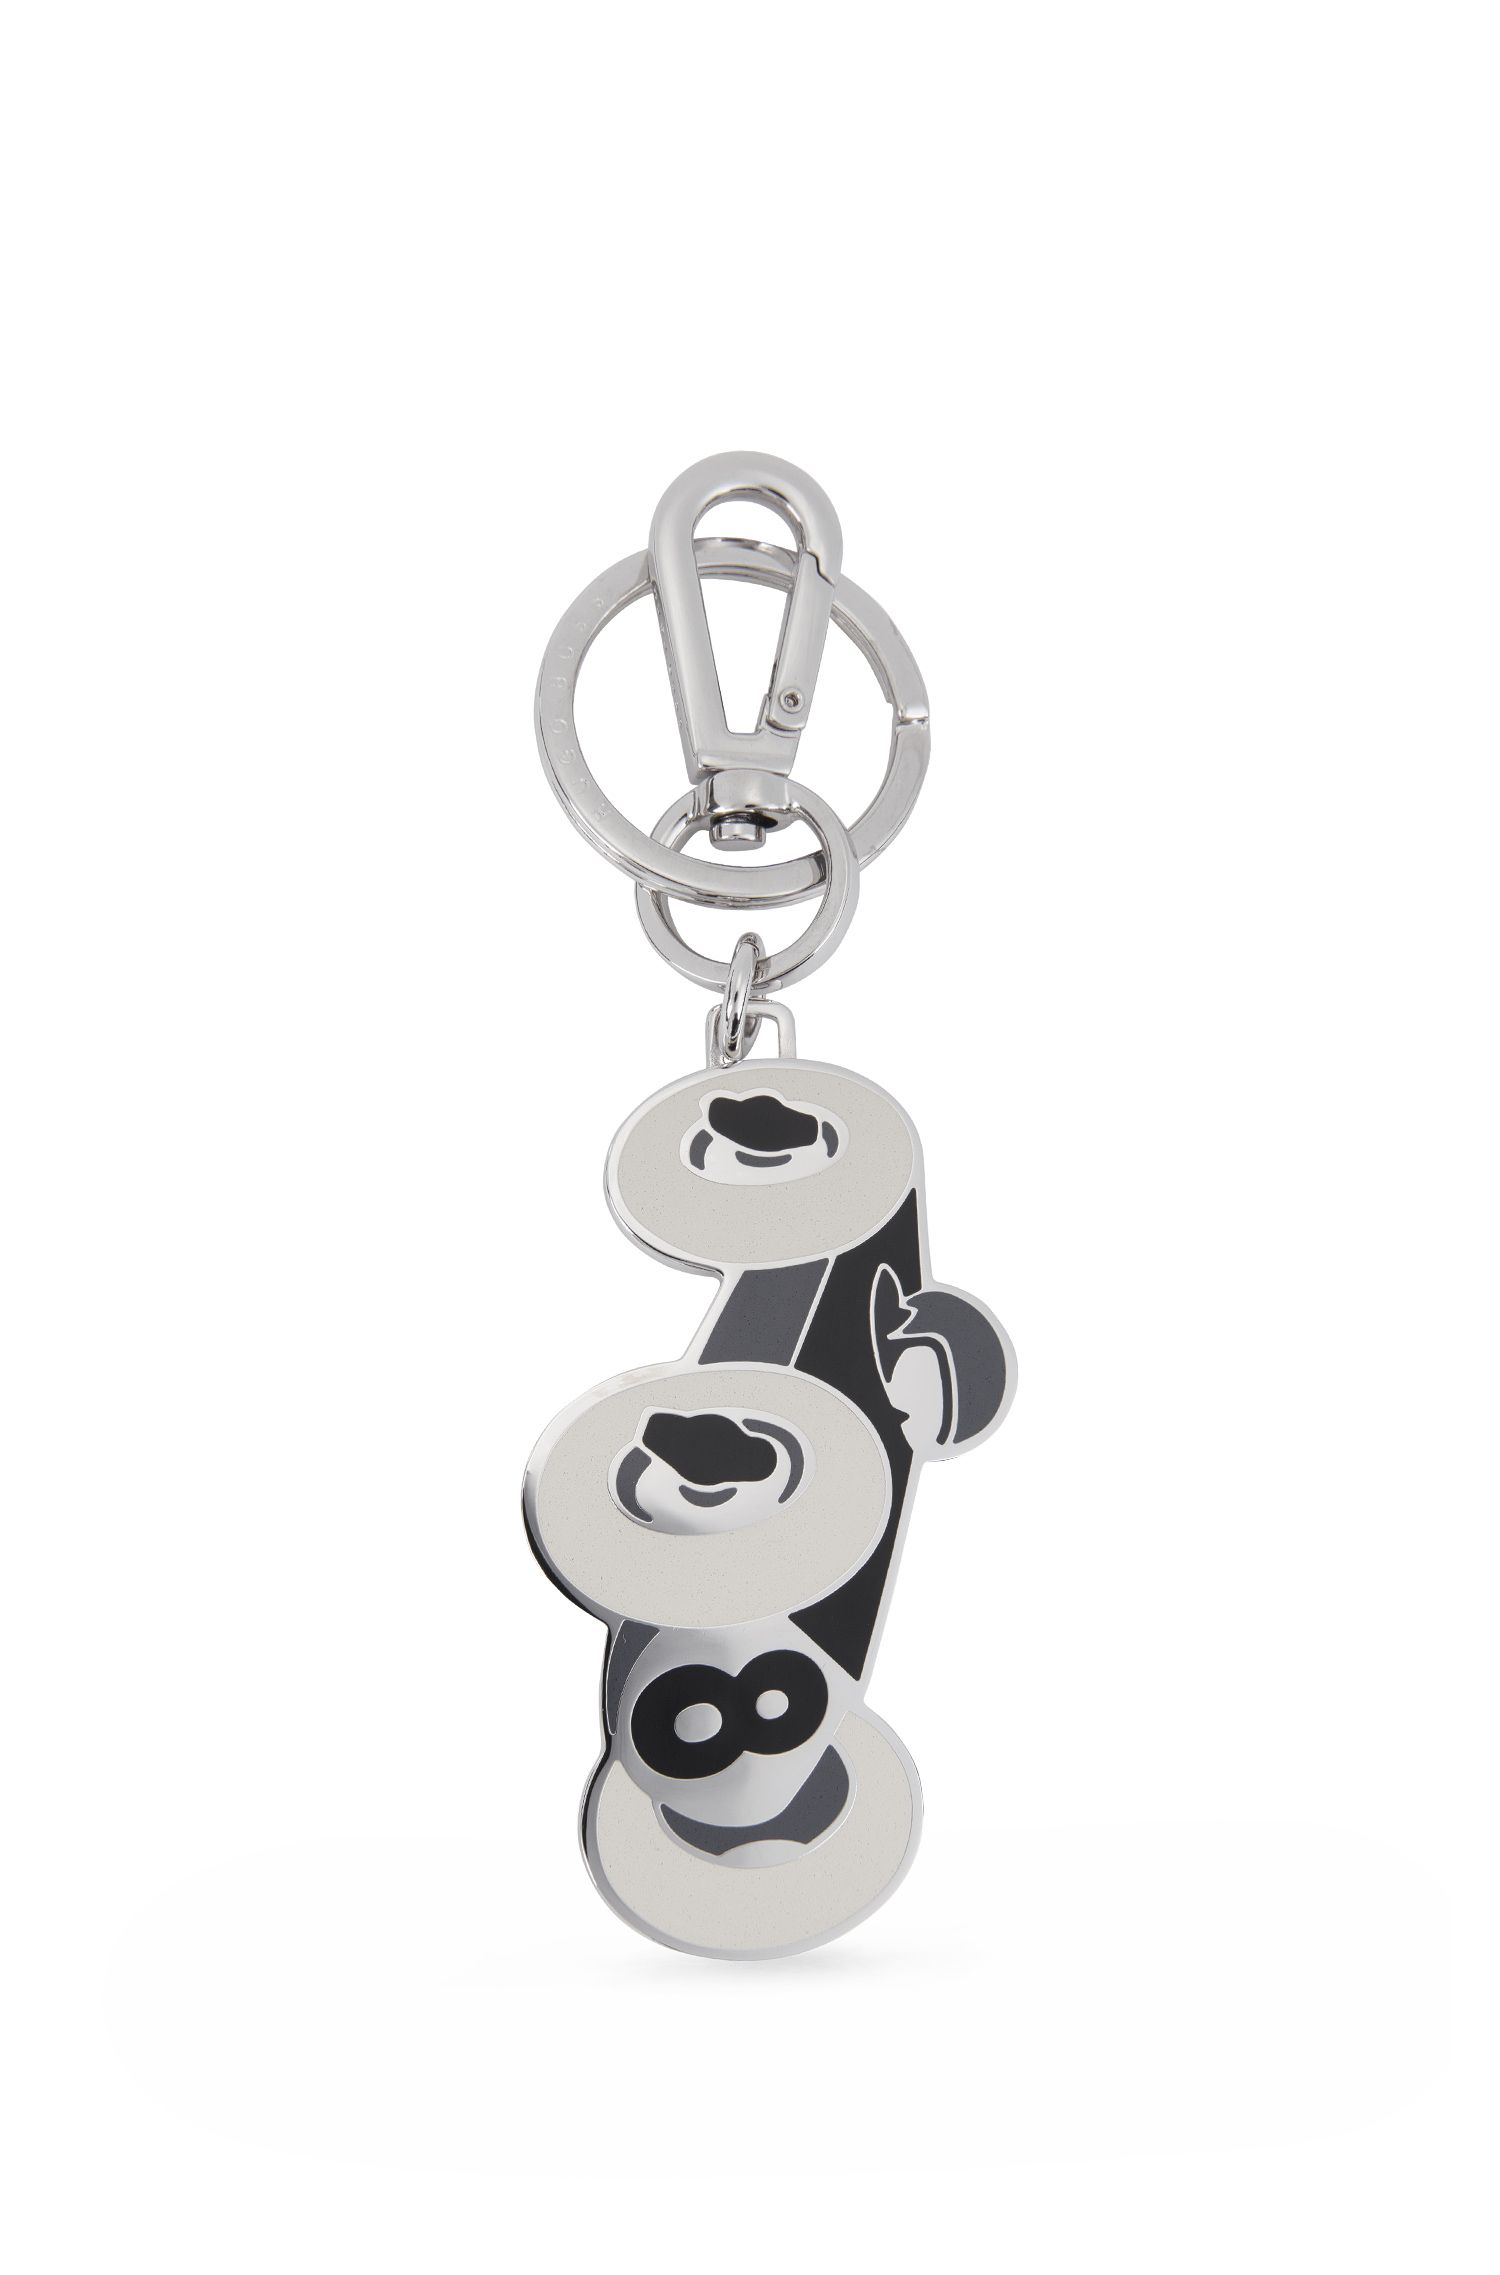 Stainless-steel key holder with coloured enamel